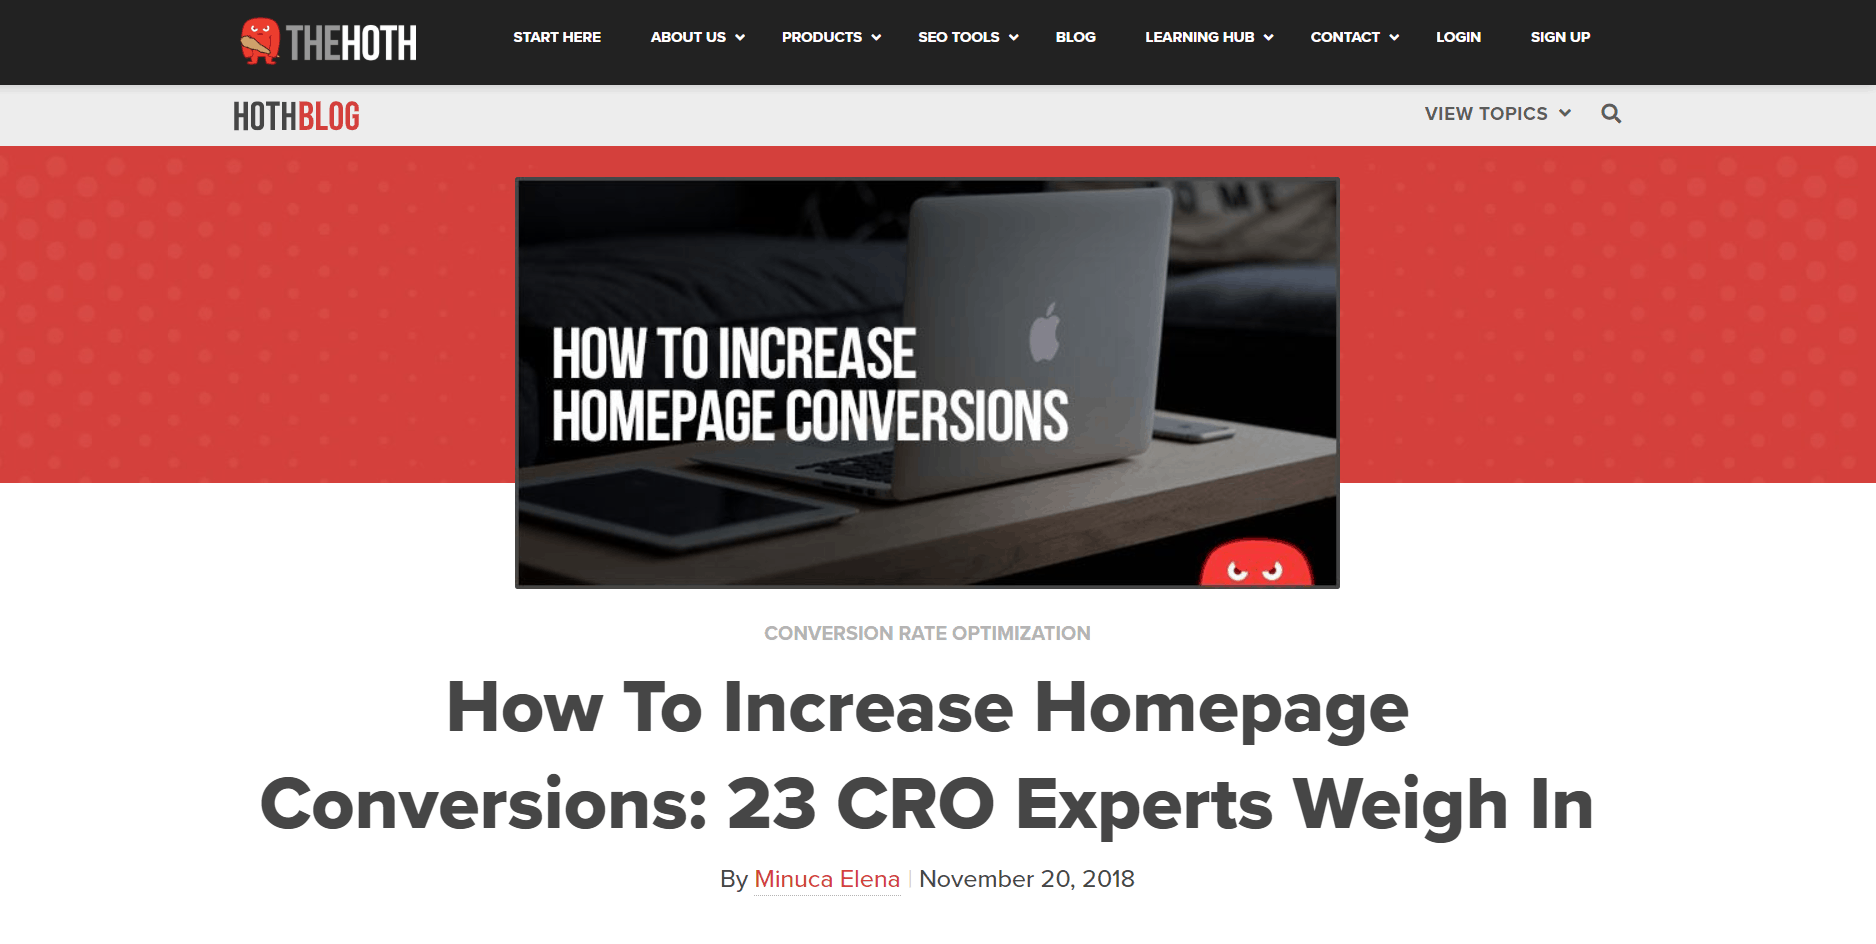 Homepage conversions expert roundup